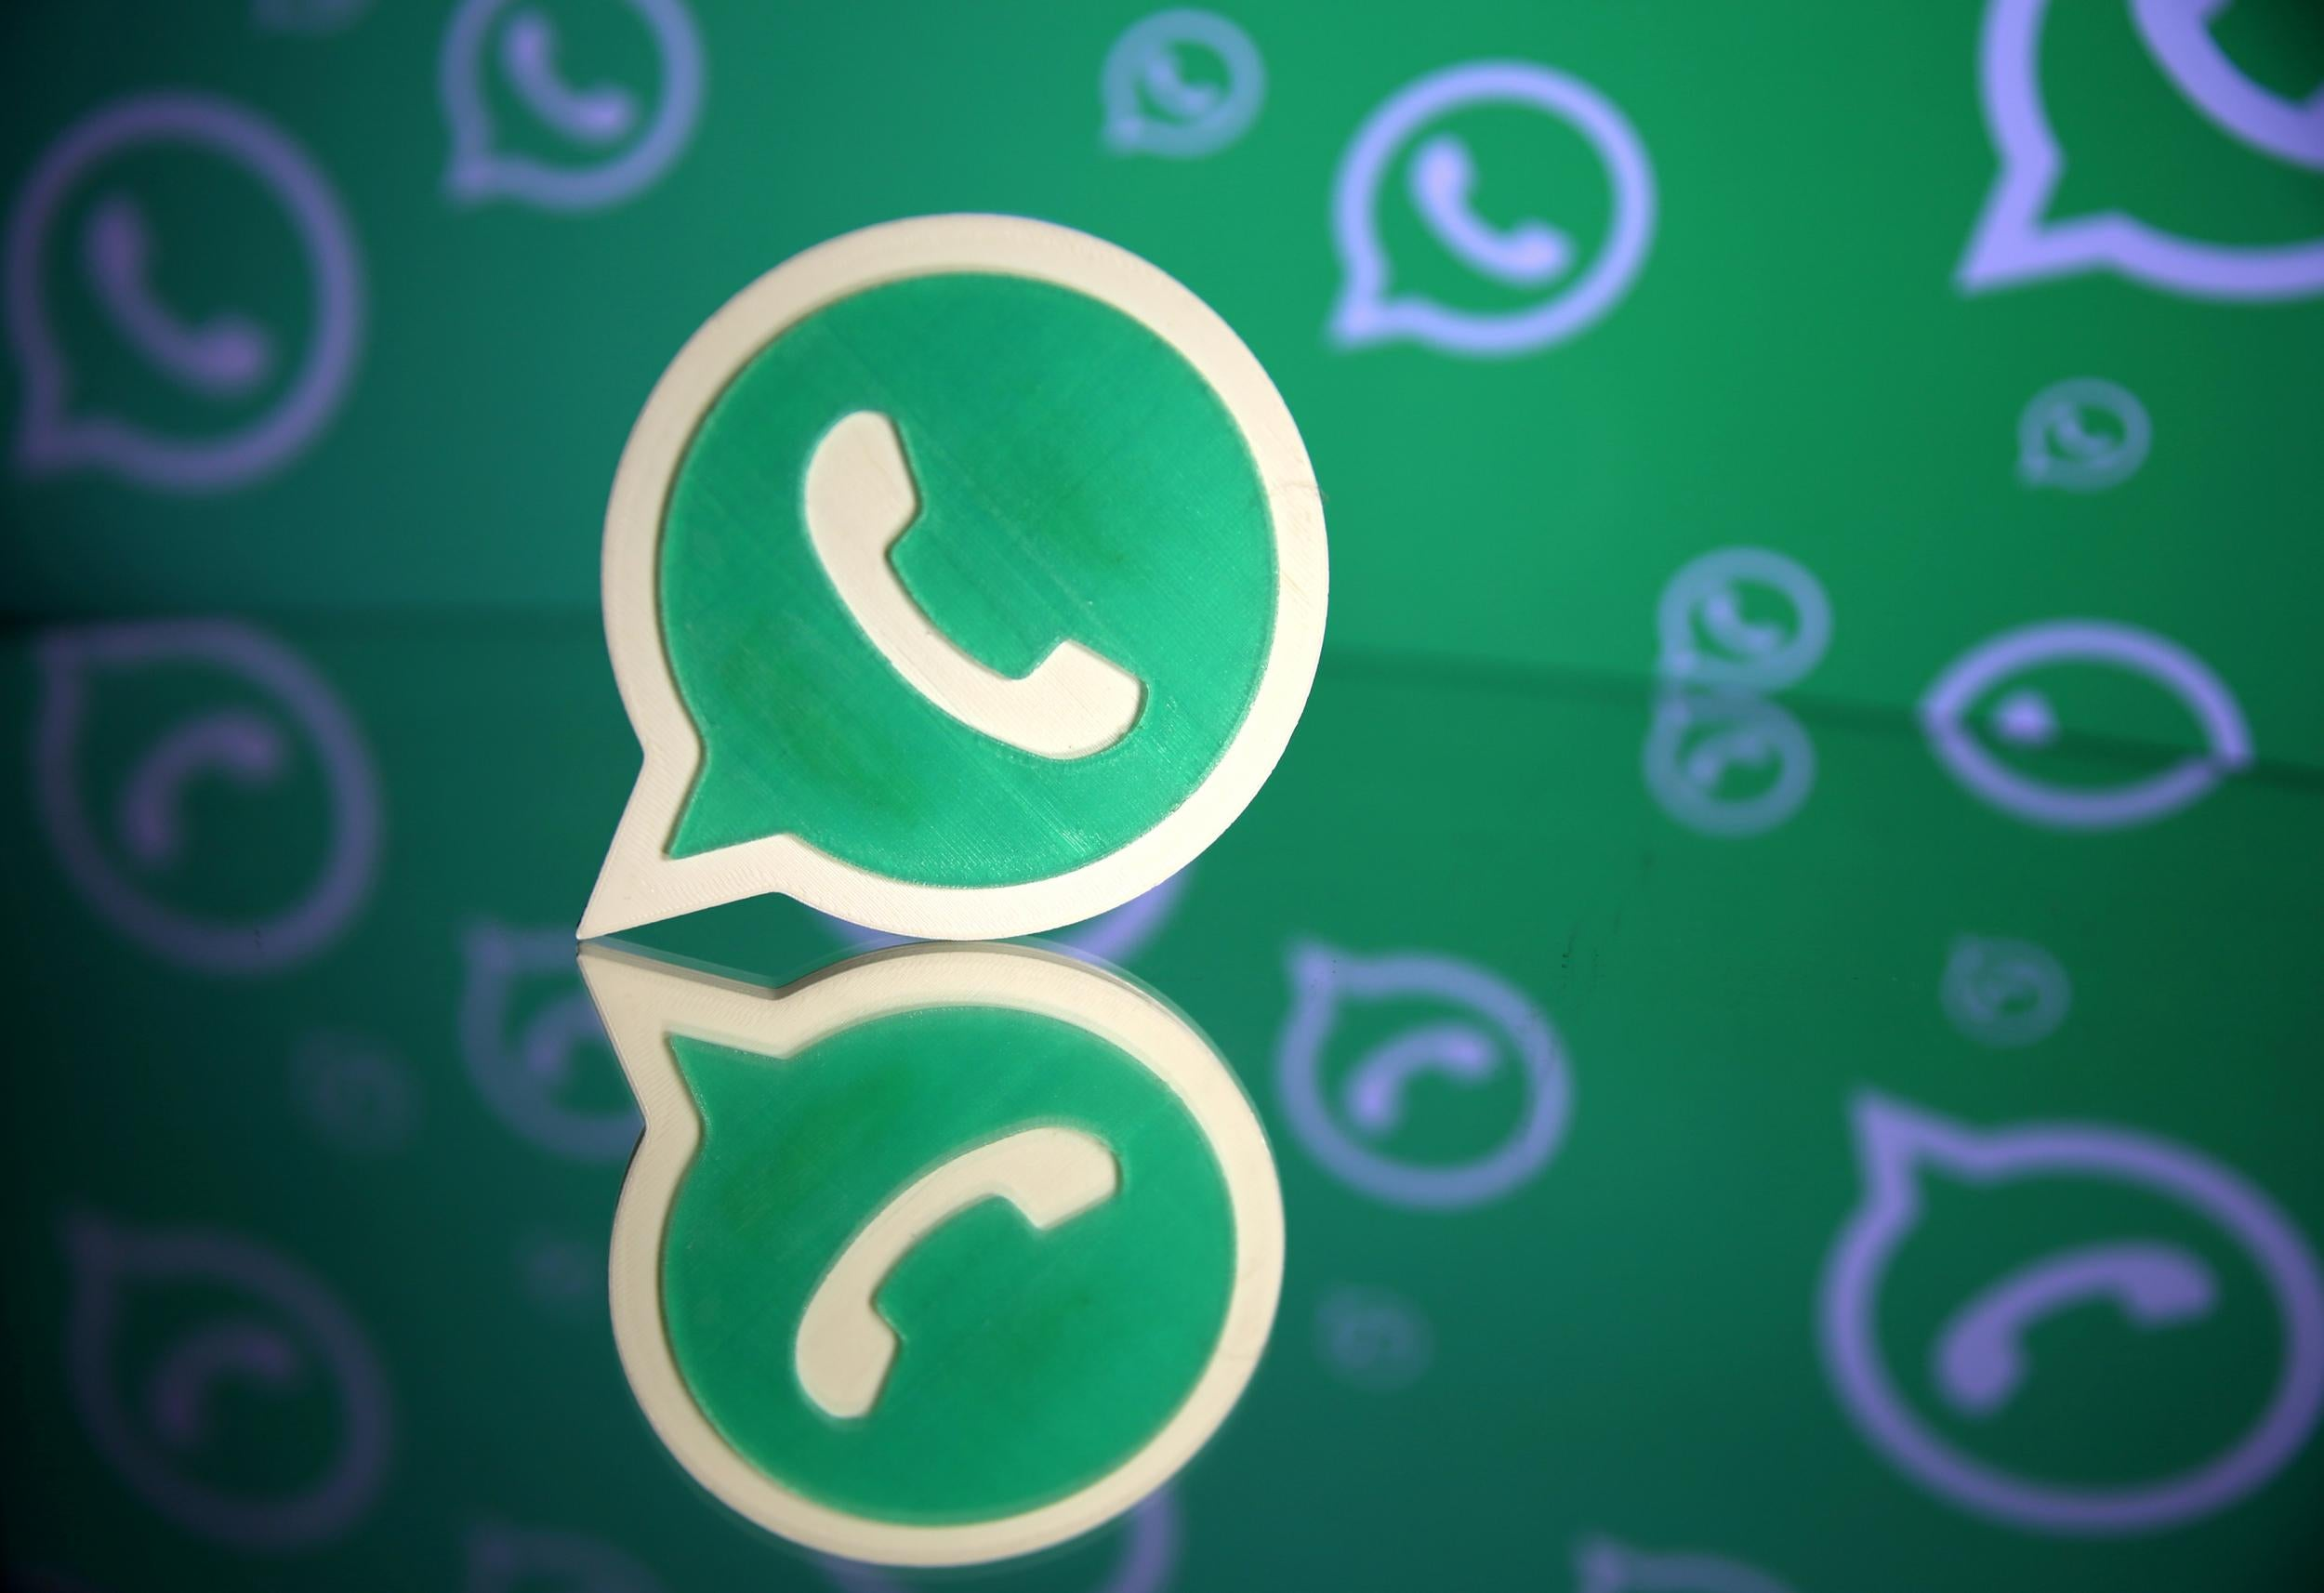 WhatsApp Update: Group Video Chats Finally Come to App in Latest Version